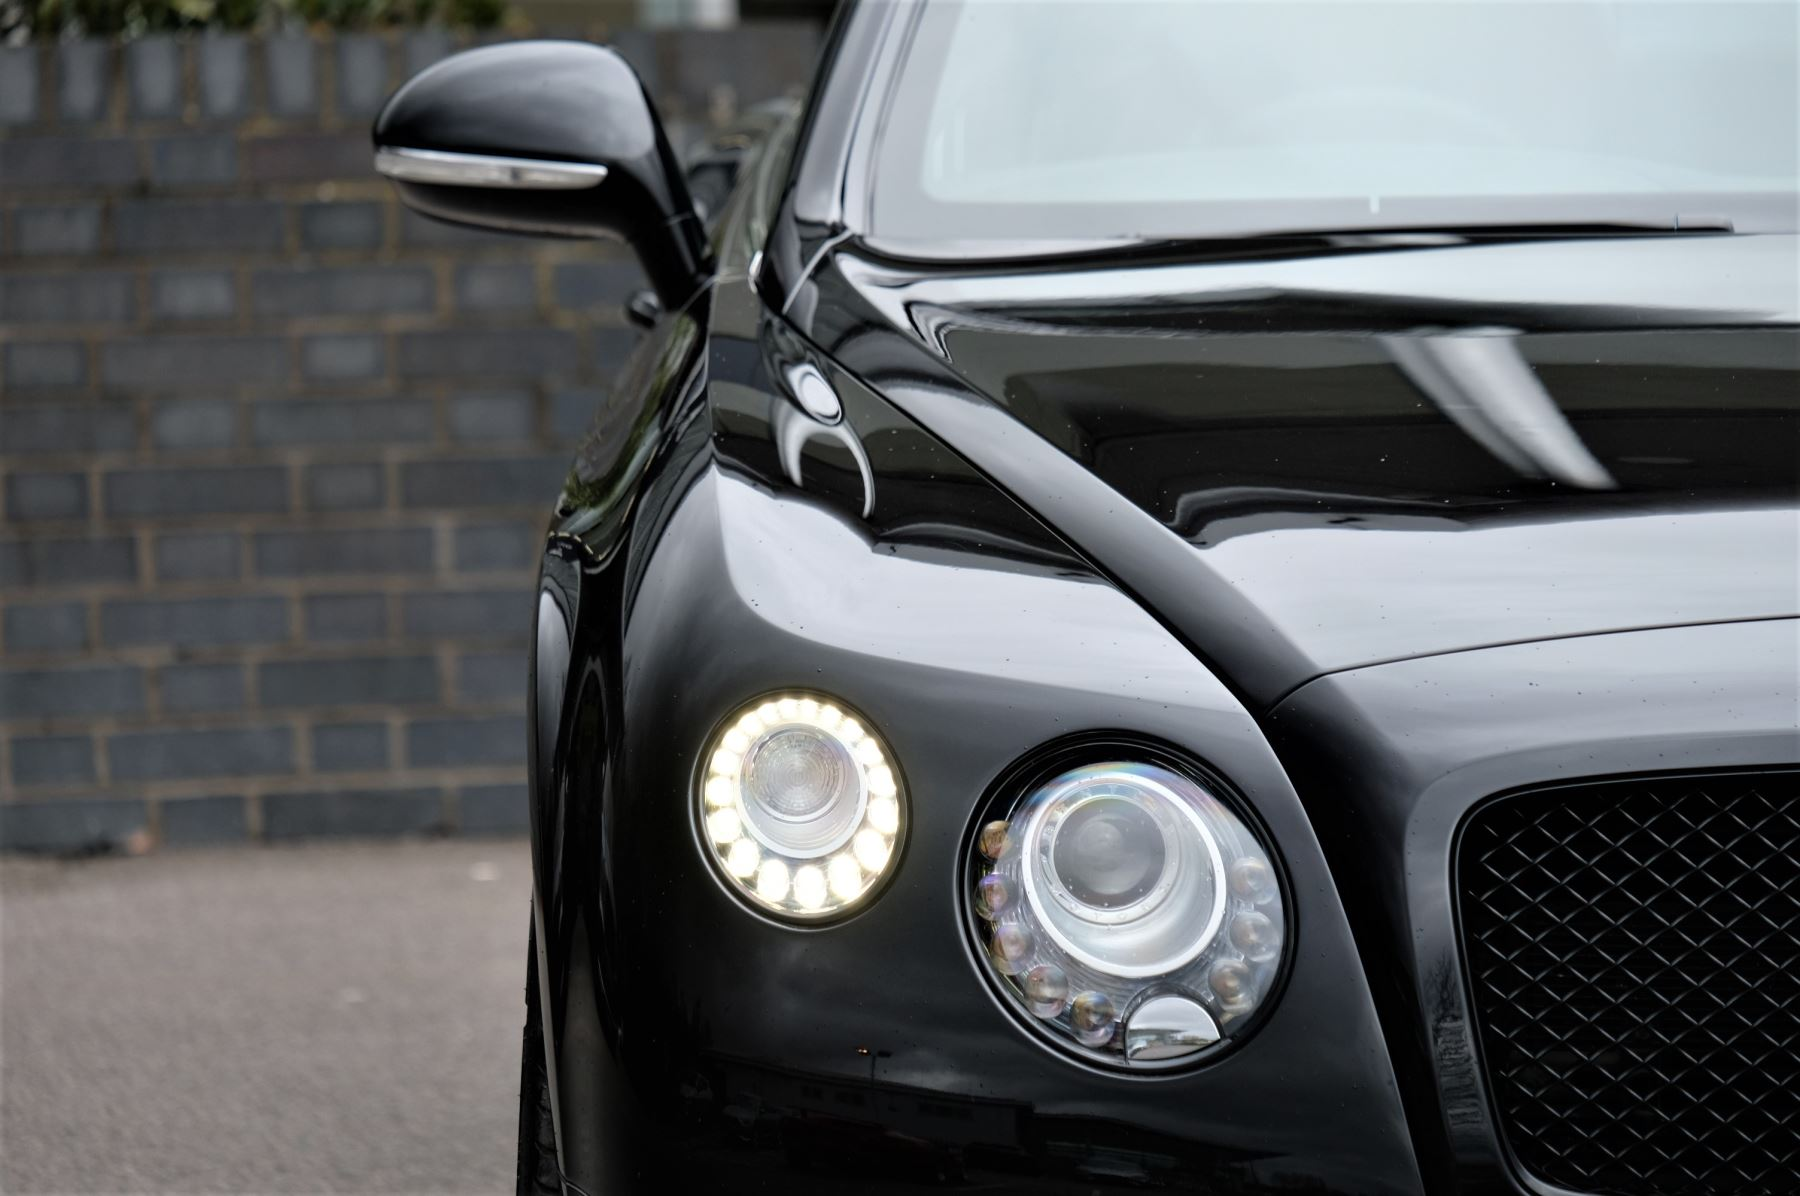 Bentley Continental GT V8 S Convertible Black Edition 4.0 V8 S 2dr - Concours Series  image 6